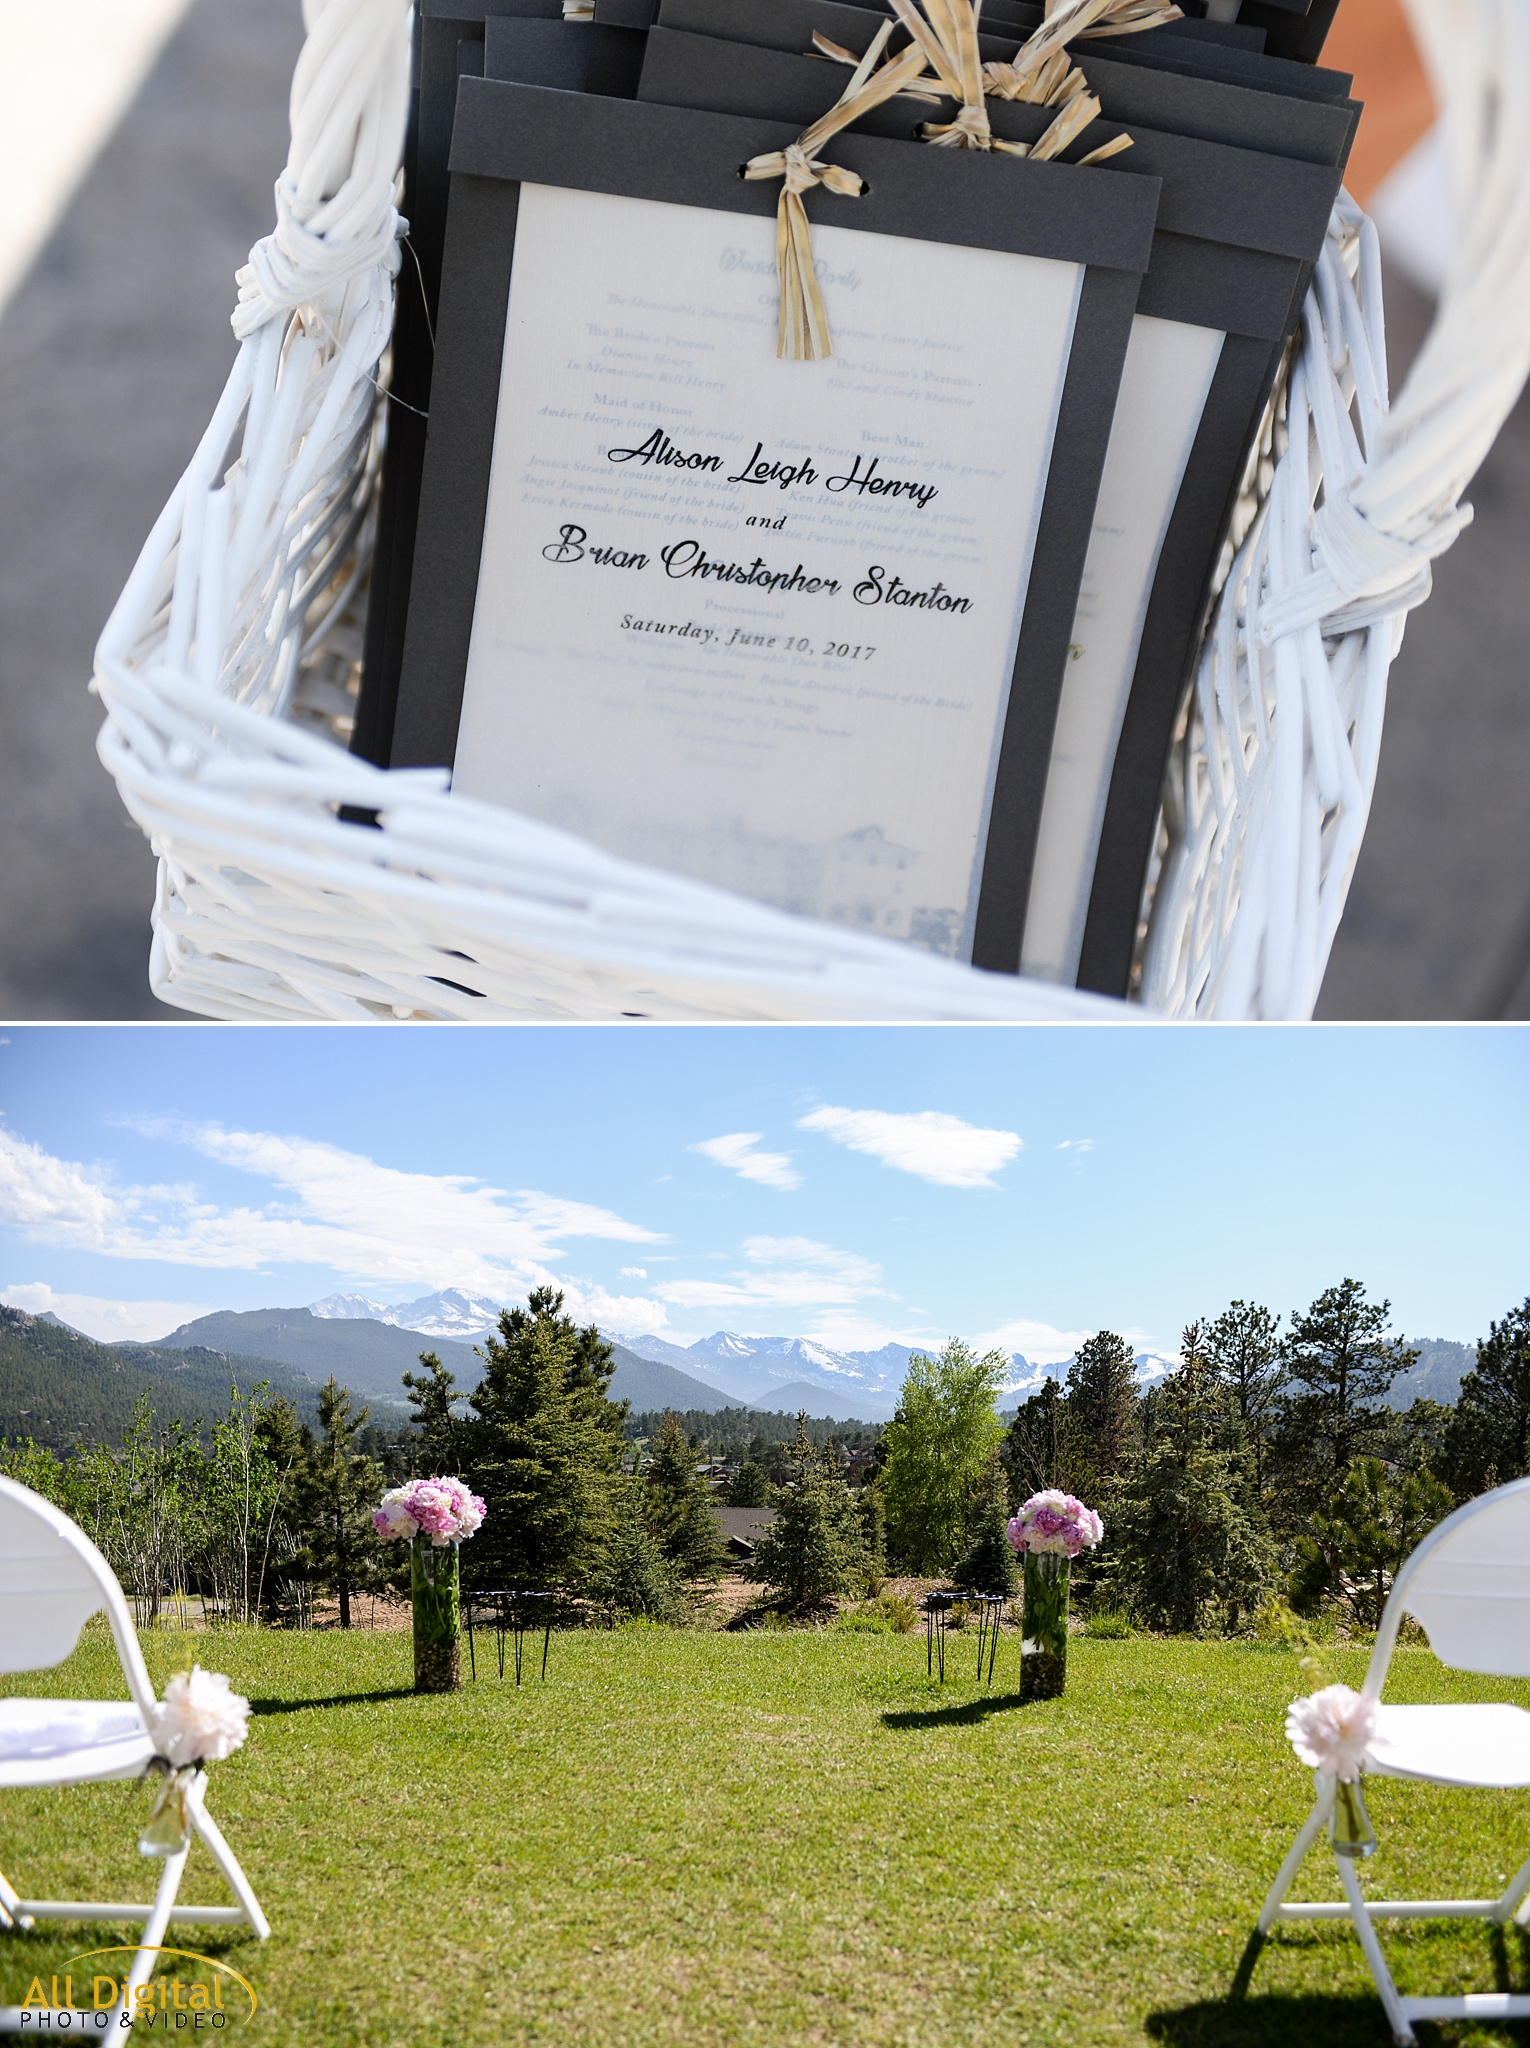 Wedding Ceremony Decor at the Stanley Hotel in Estes Park, Colorado